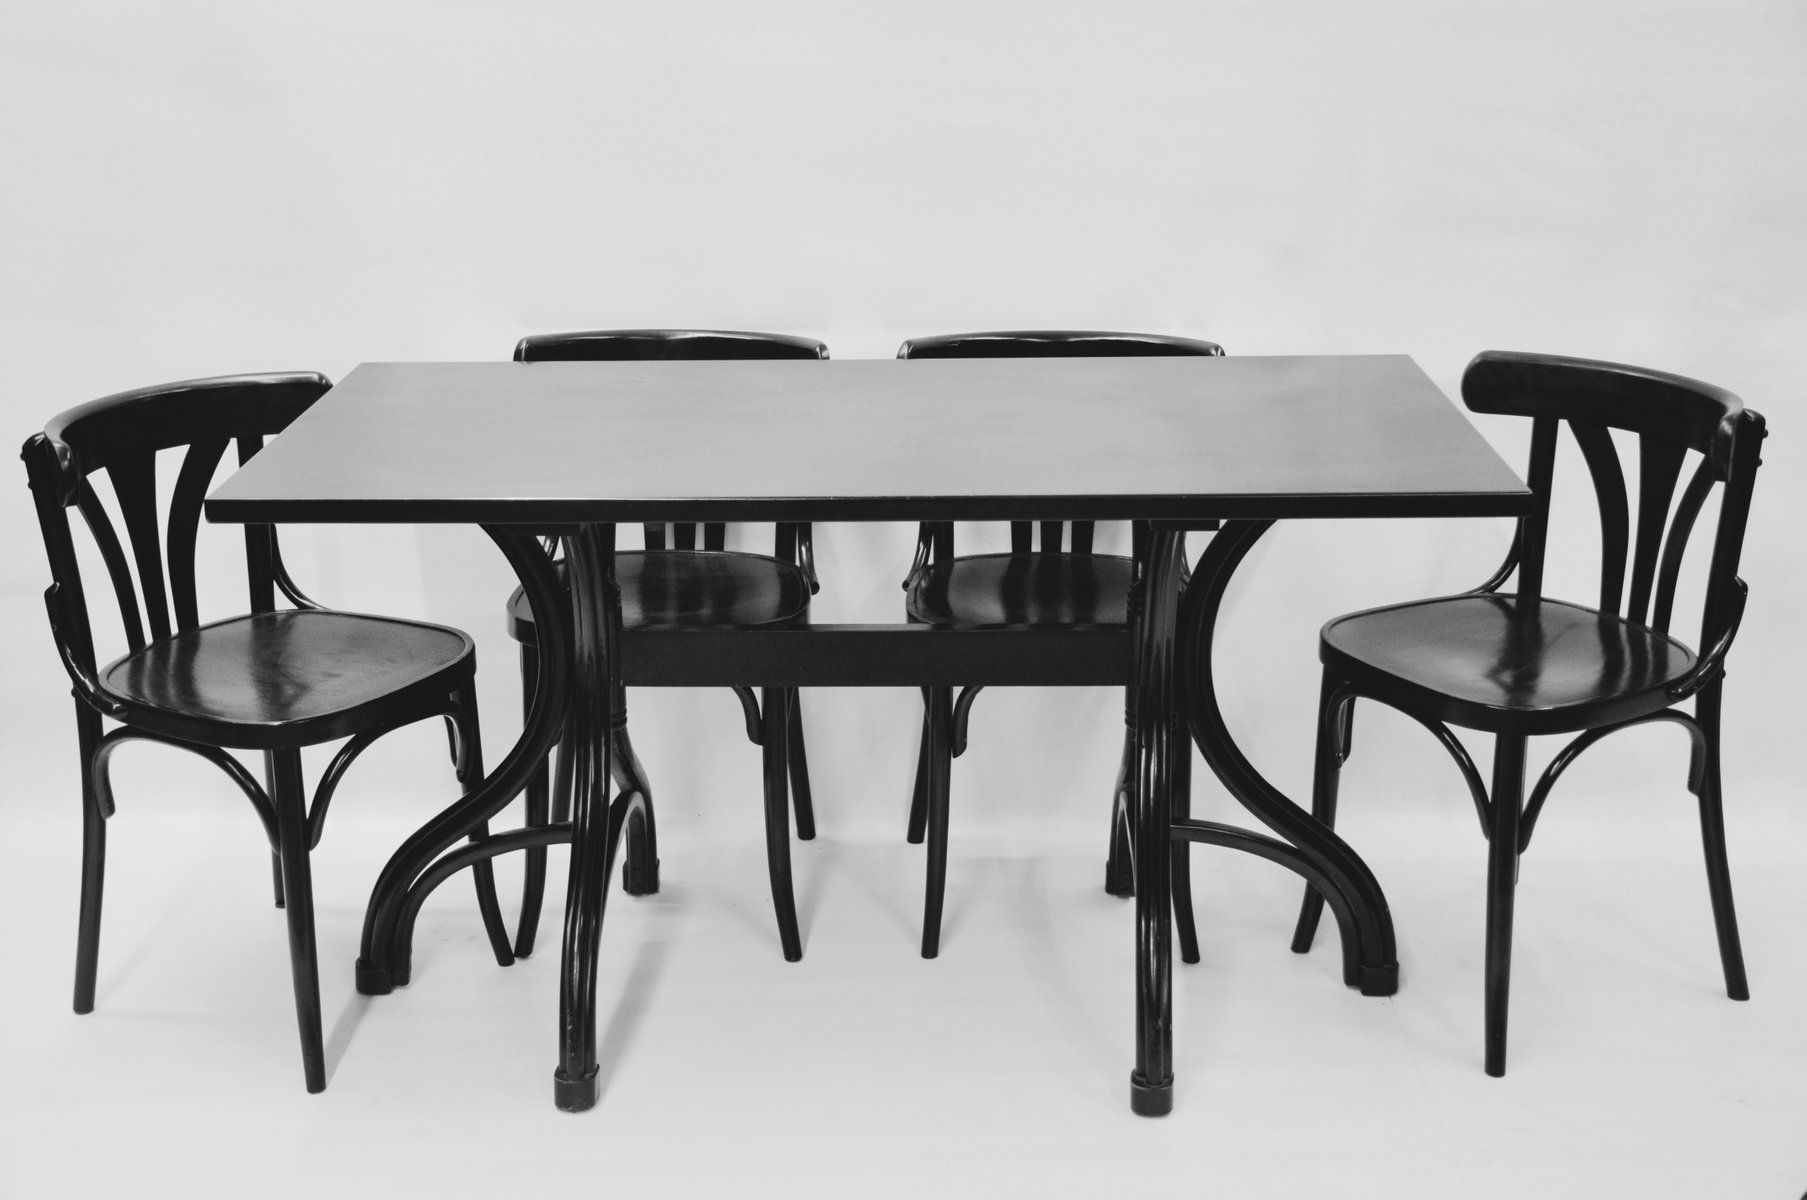 Bentwood Table and 4 Bentwood Chairs by Thonet 1980s for sale at